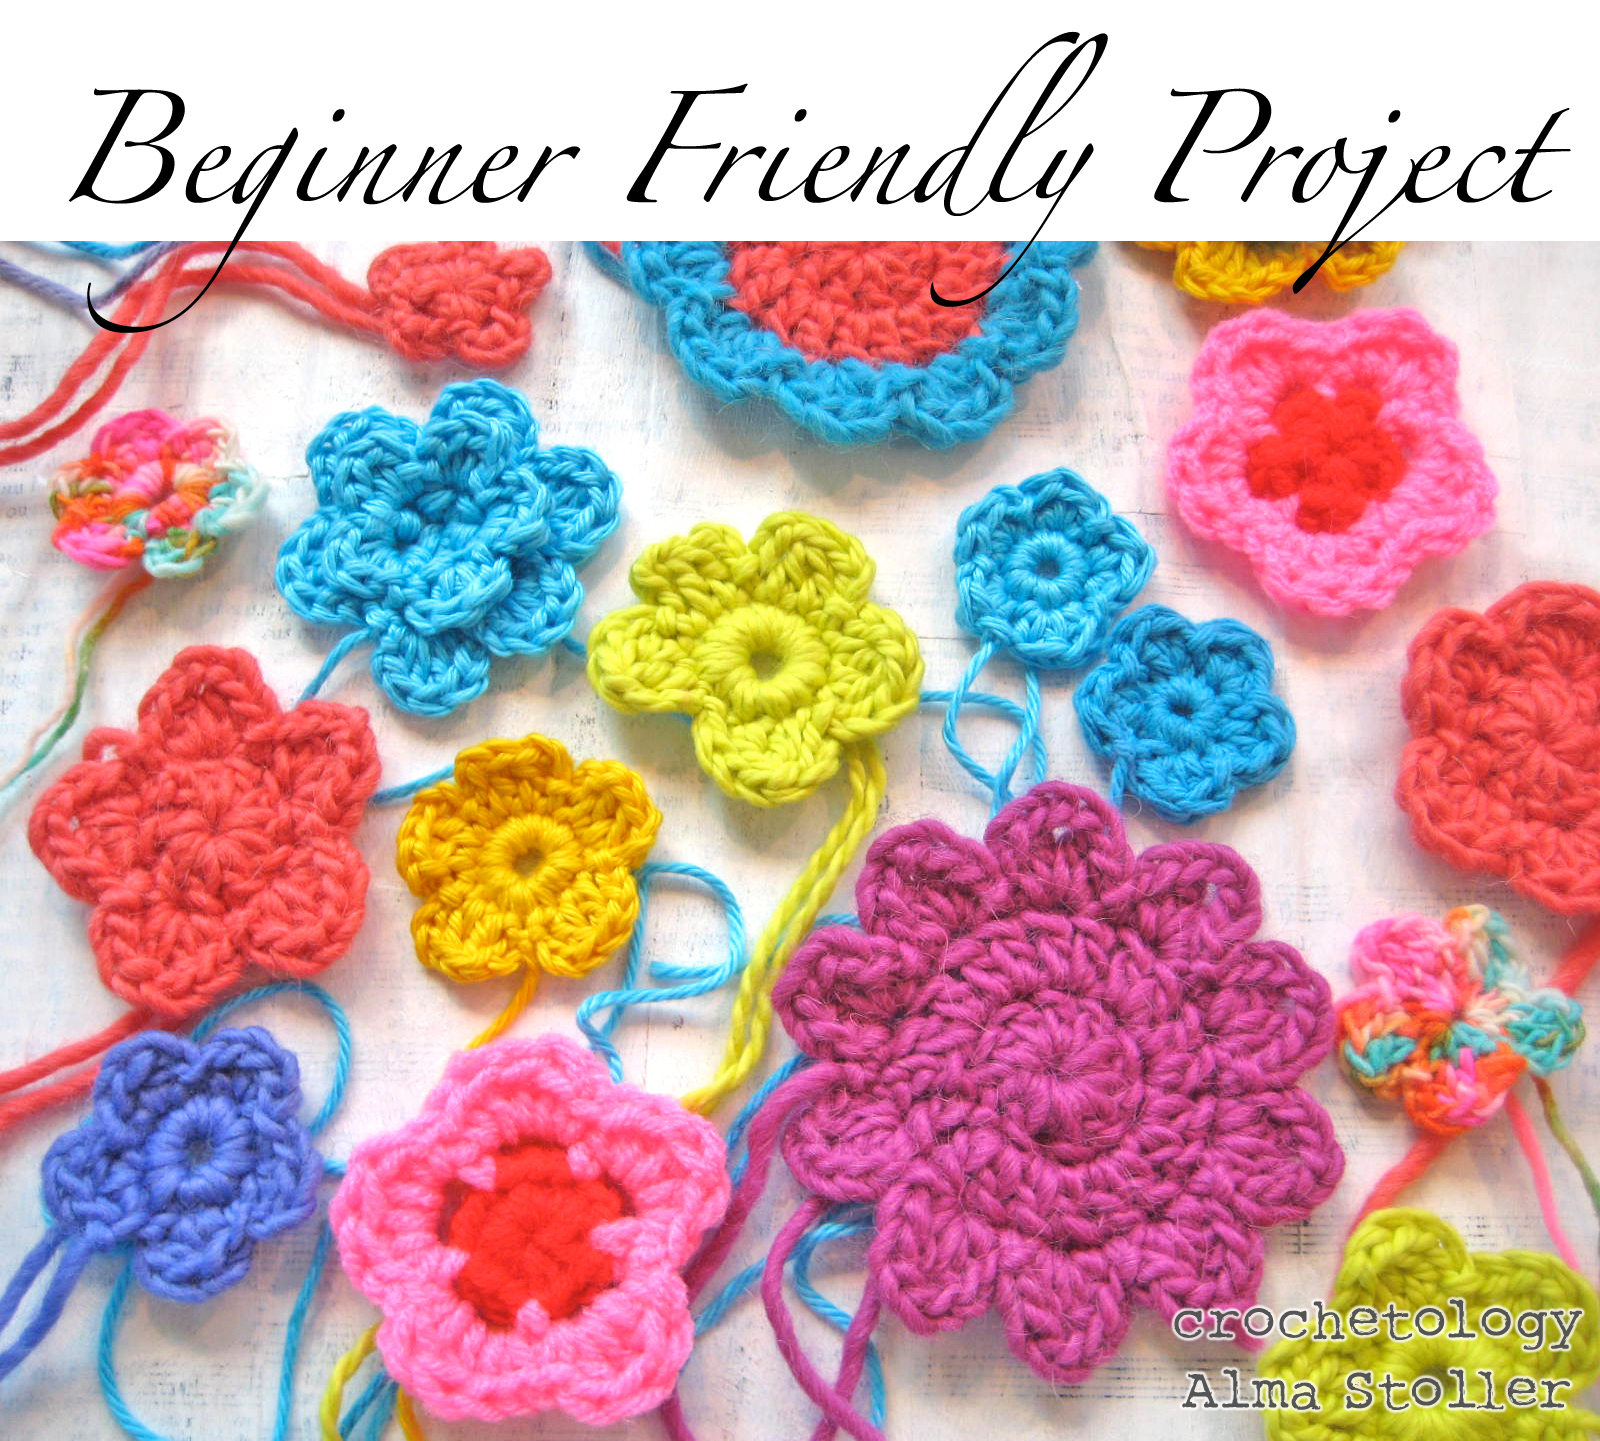 Crocheting Projects For Beginners : Crochetology: The Perks Of MakingA Crochet Flower